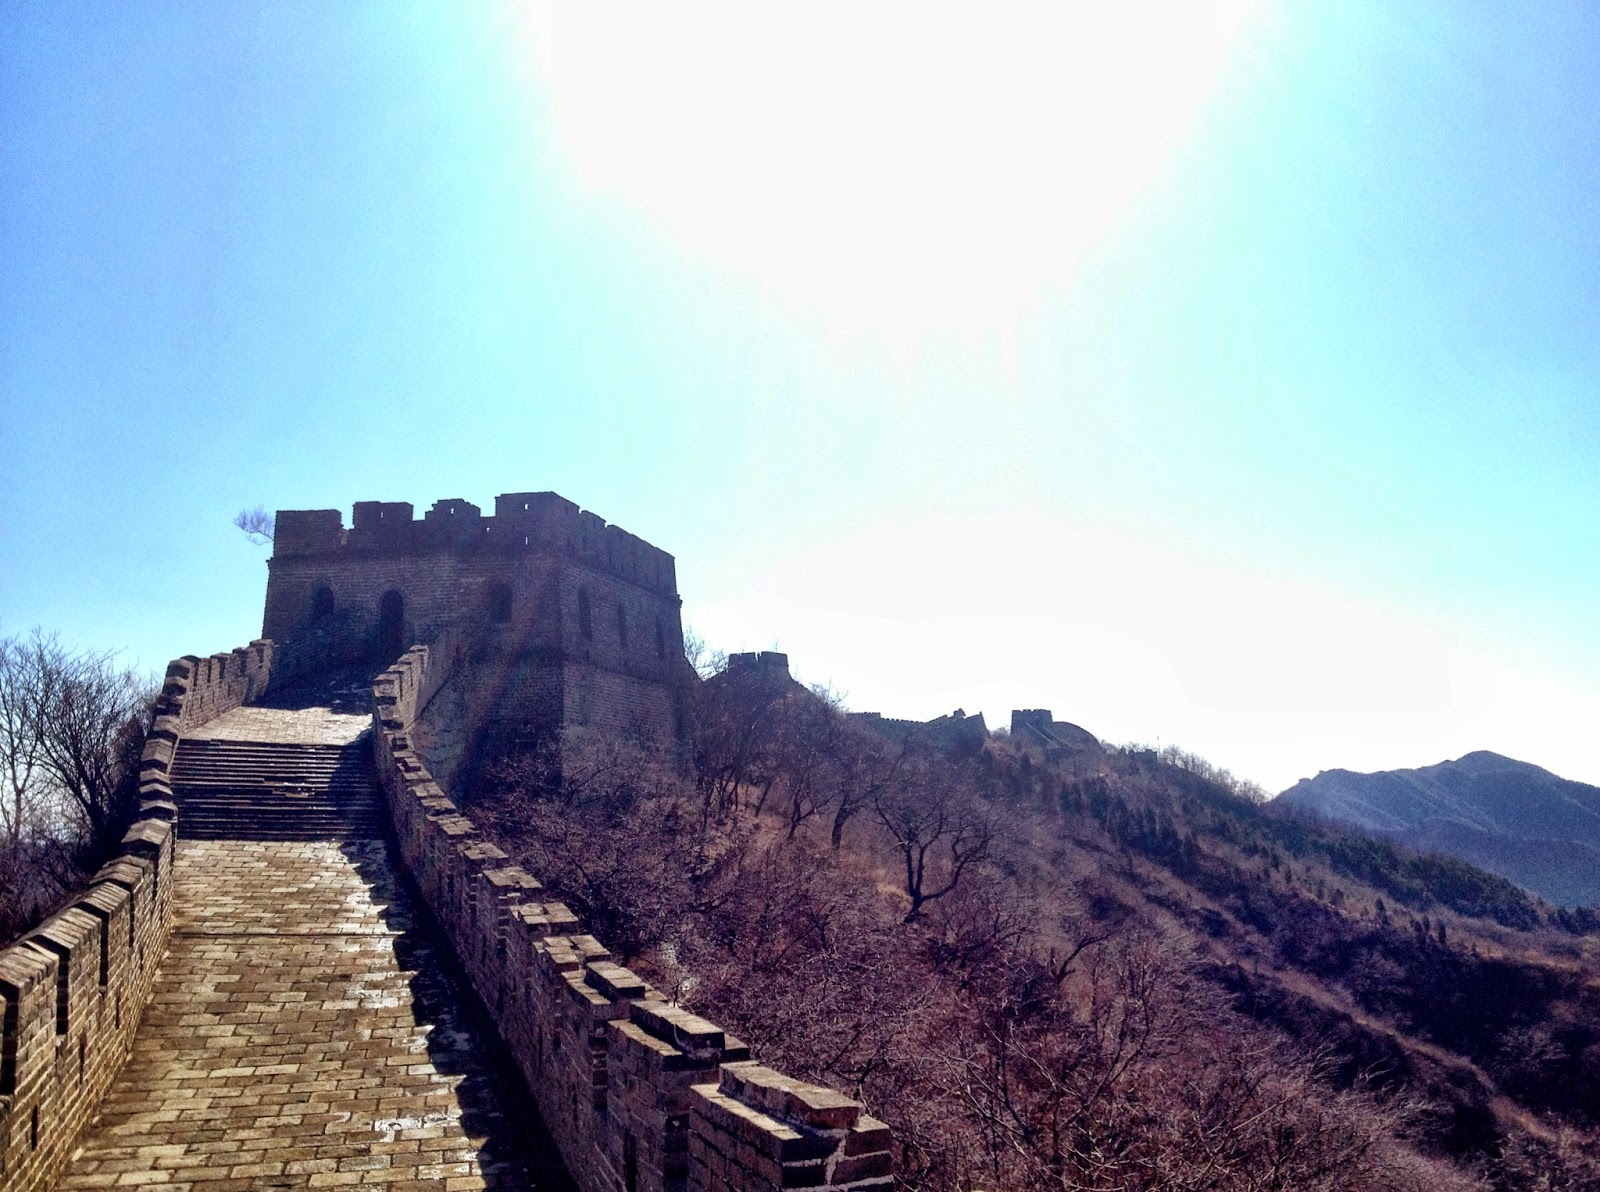 The sun beating down on the Great Wall